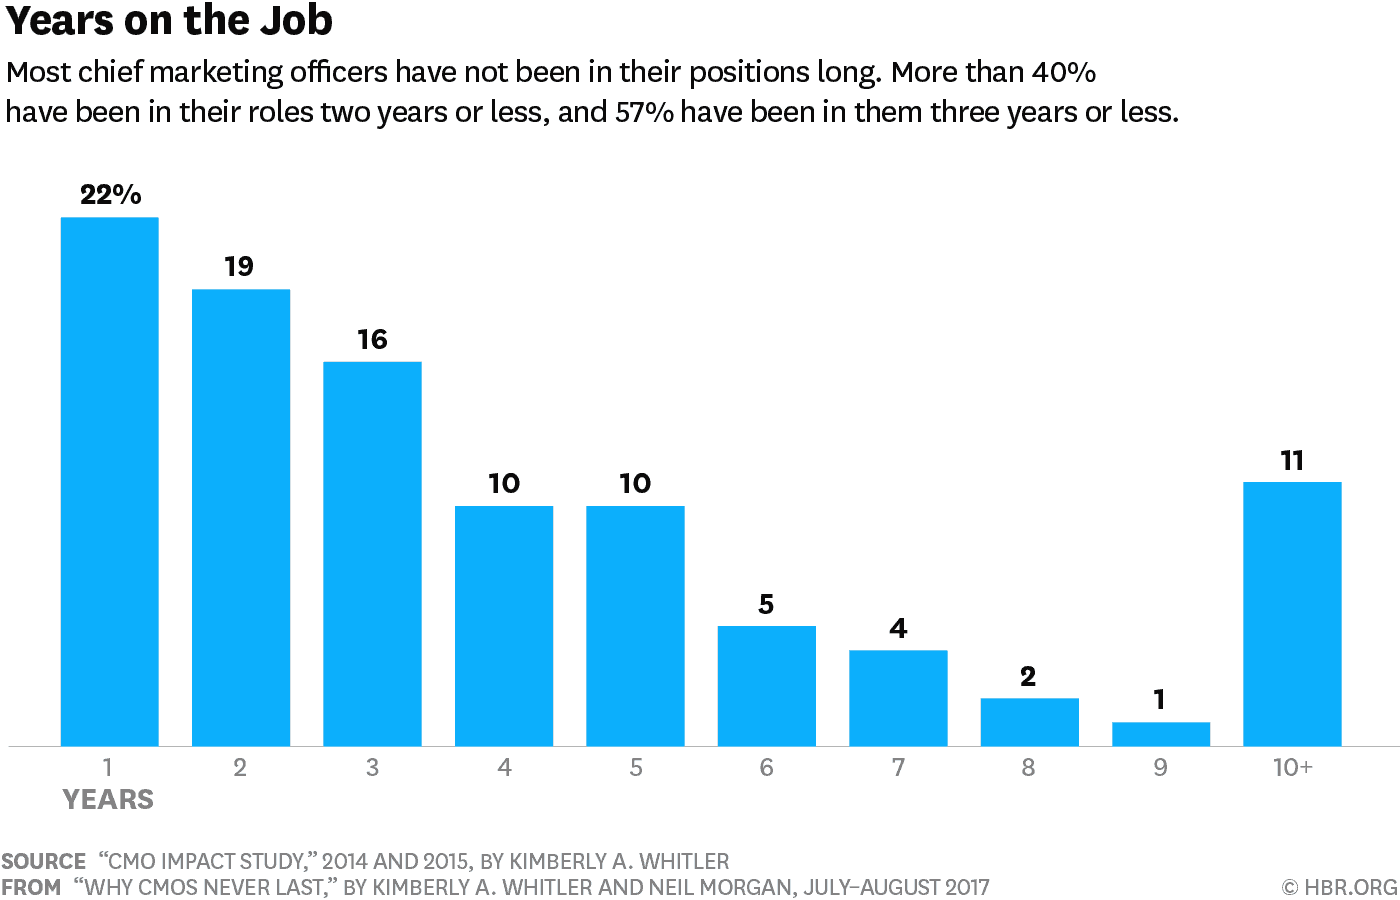 tech-marketing-roles-number-of-years-most-marketing-officers-have-not-been-in-their-position-long-hbr